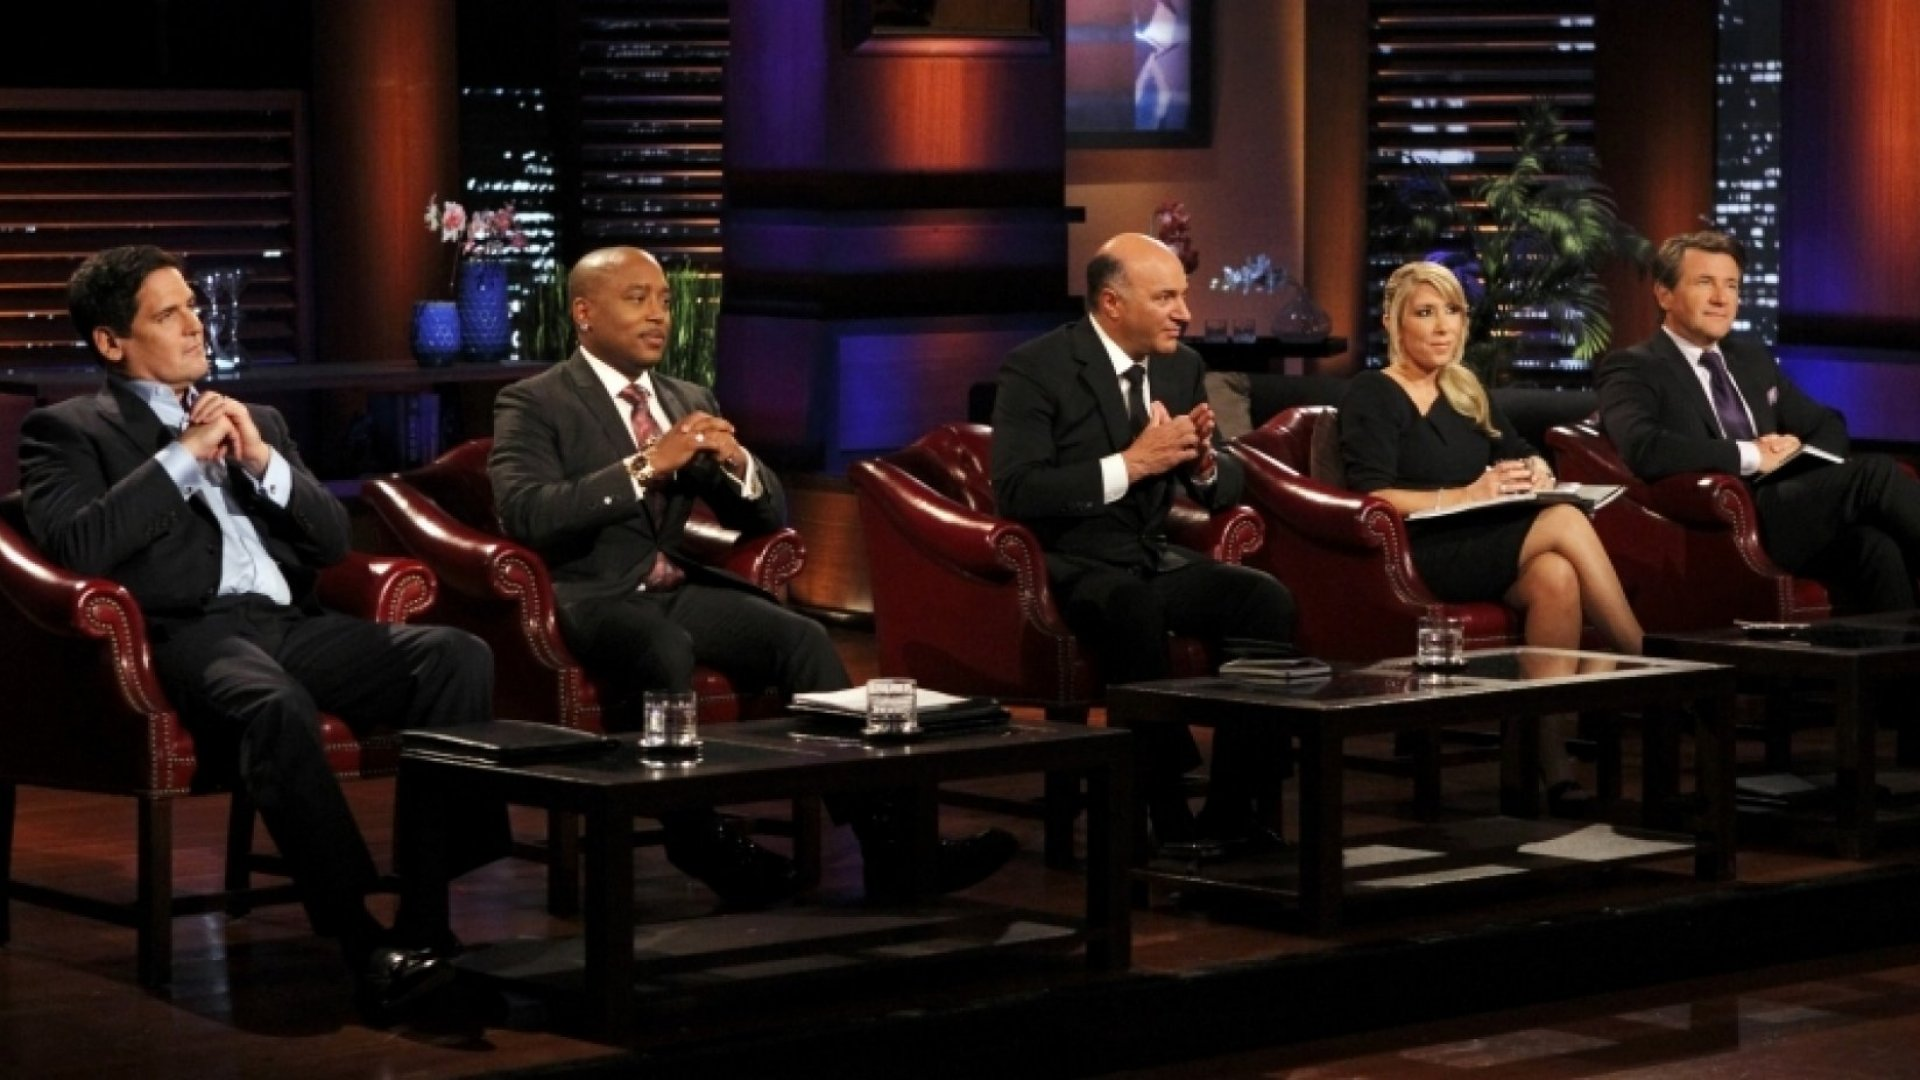 13 Best Shark Tank Episodes of All Time